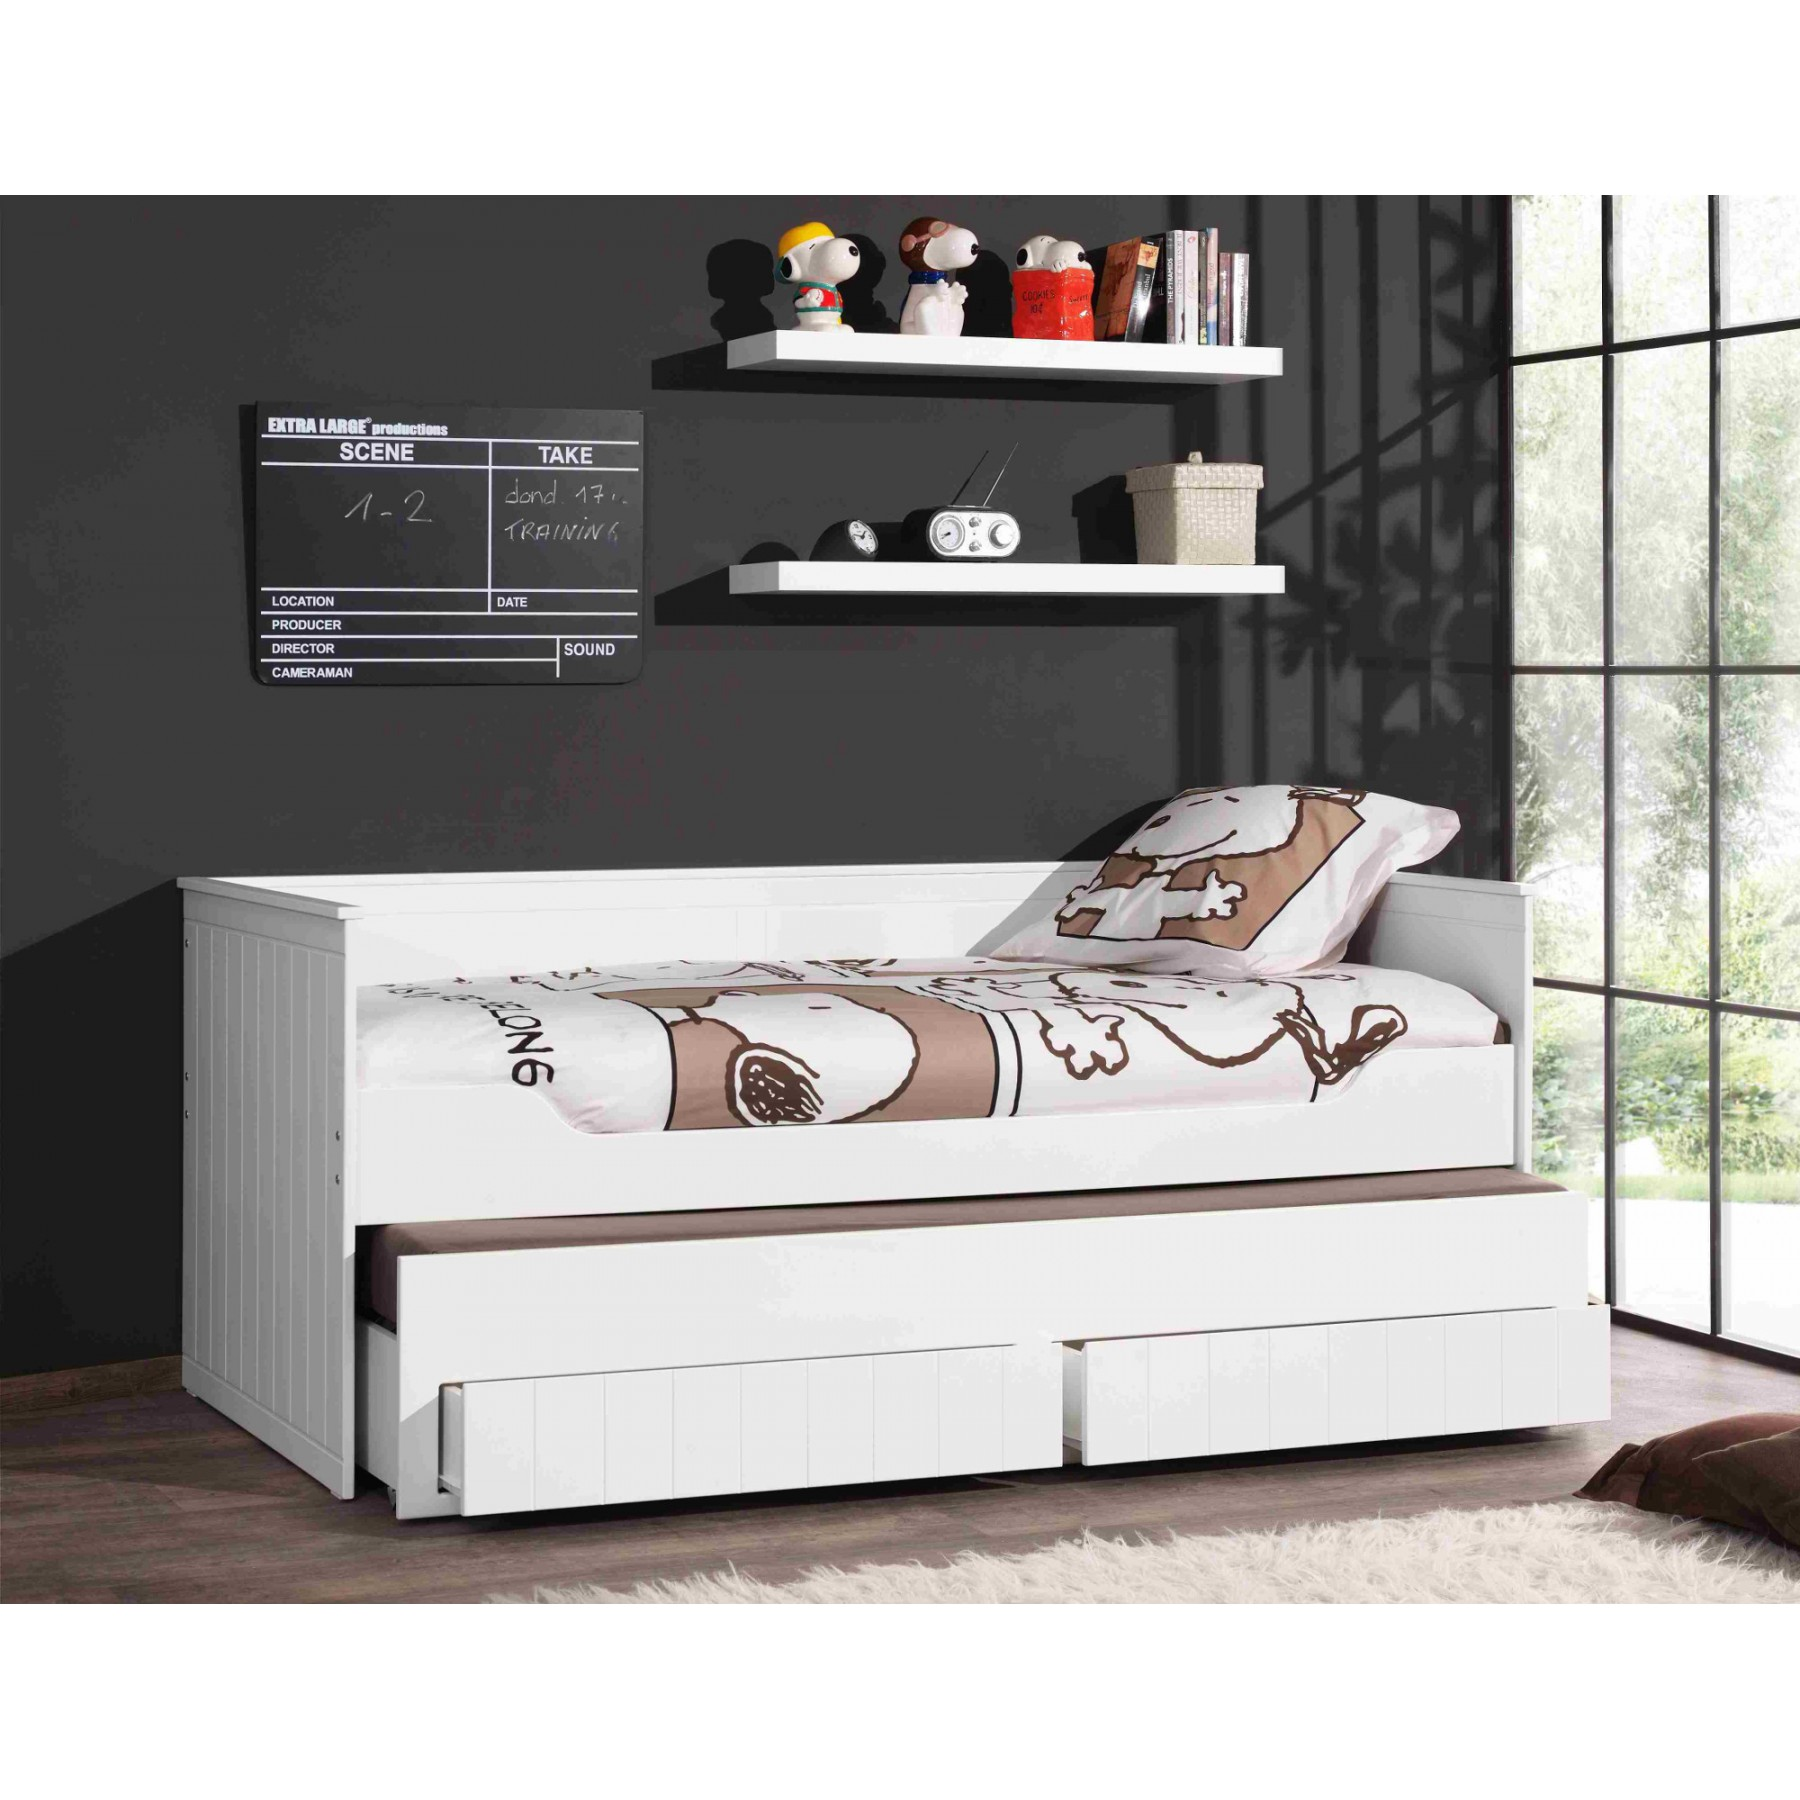 matelas lit gigogne lit gigogne enfant milo blanc. Black Bedroom Furniture Sets. Home Design Ideas